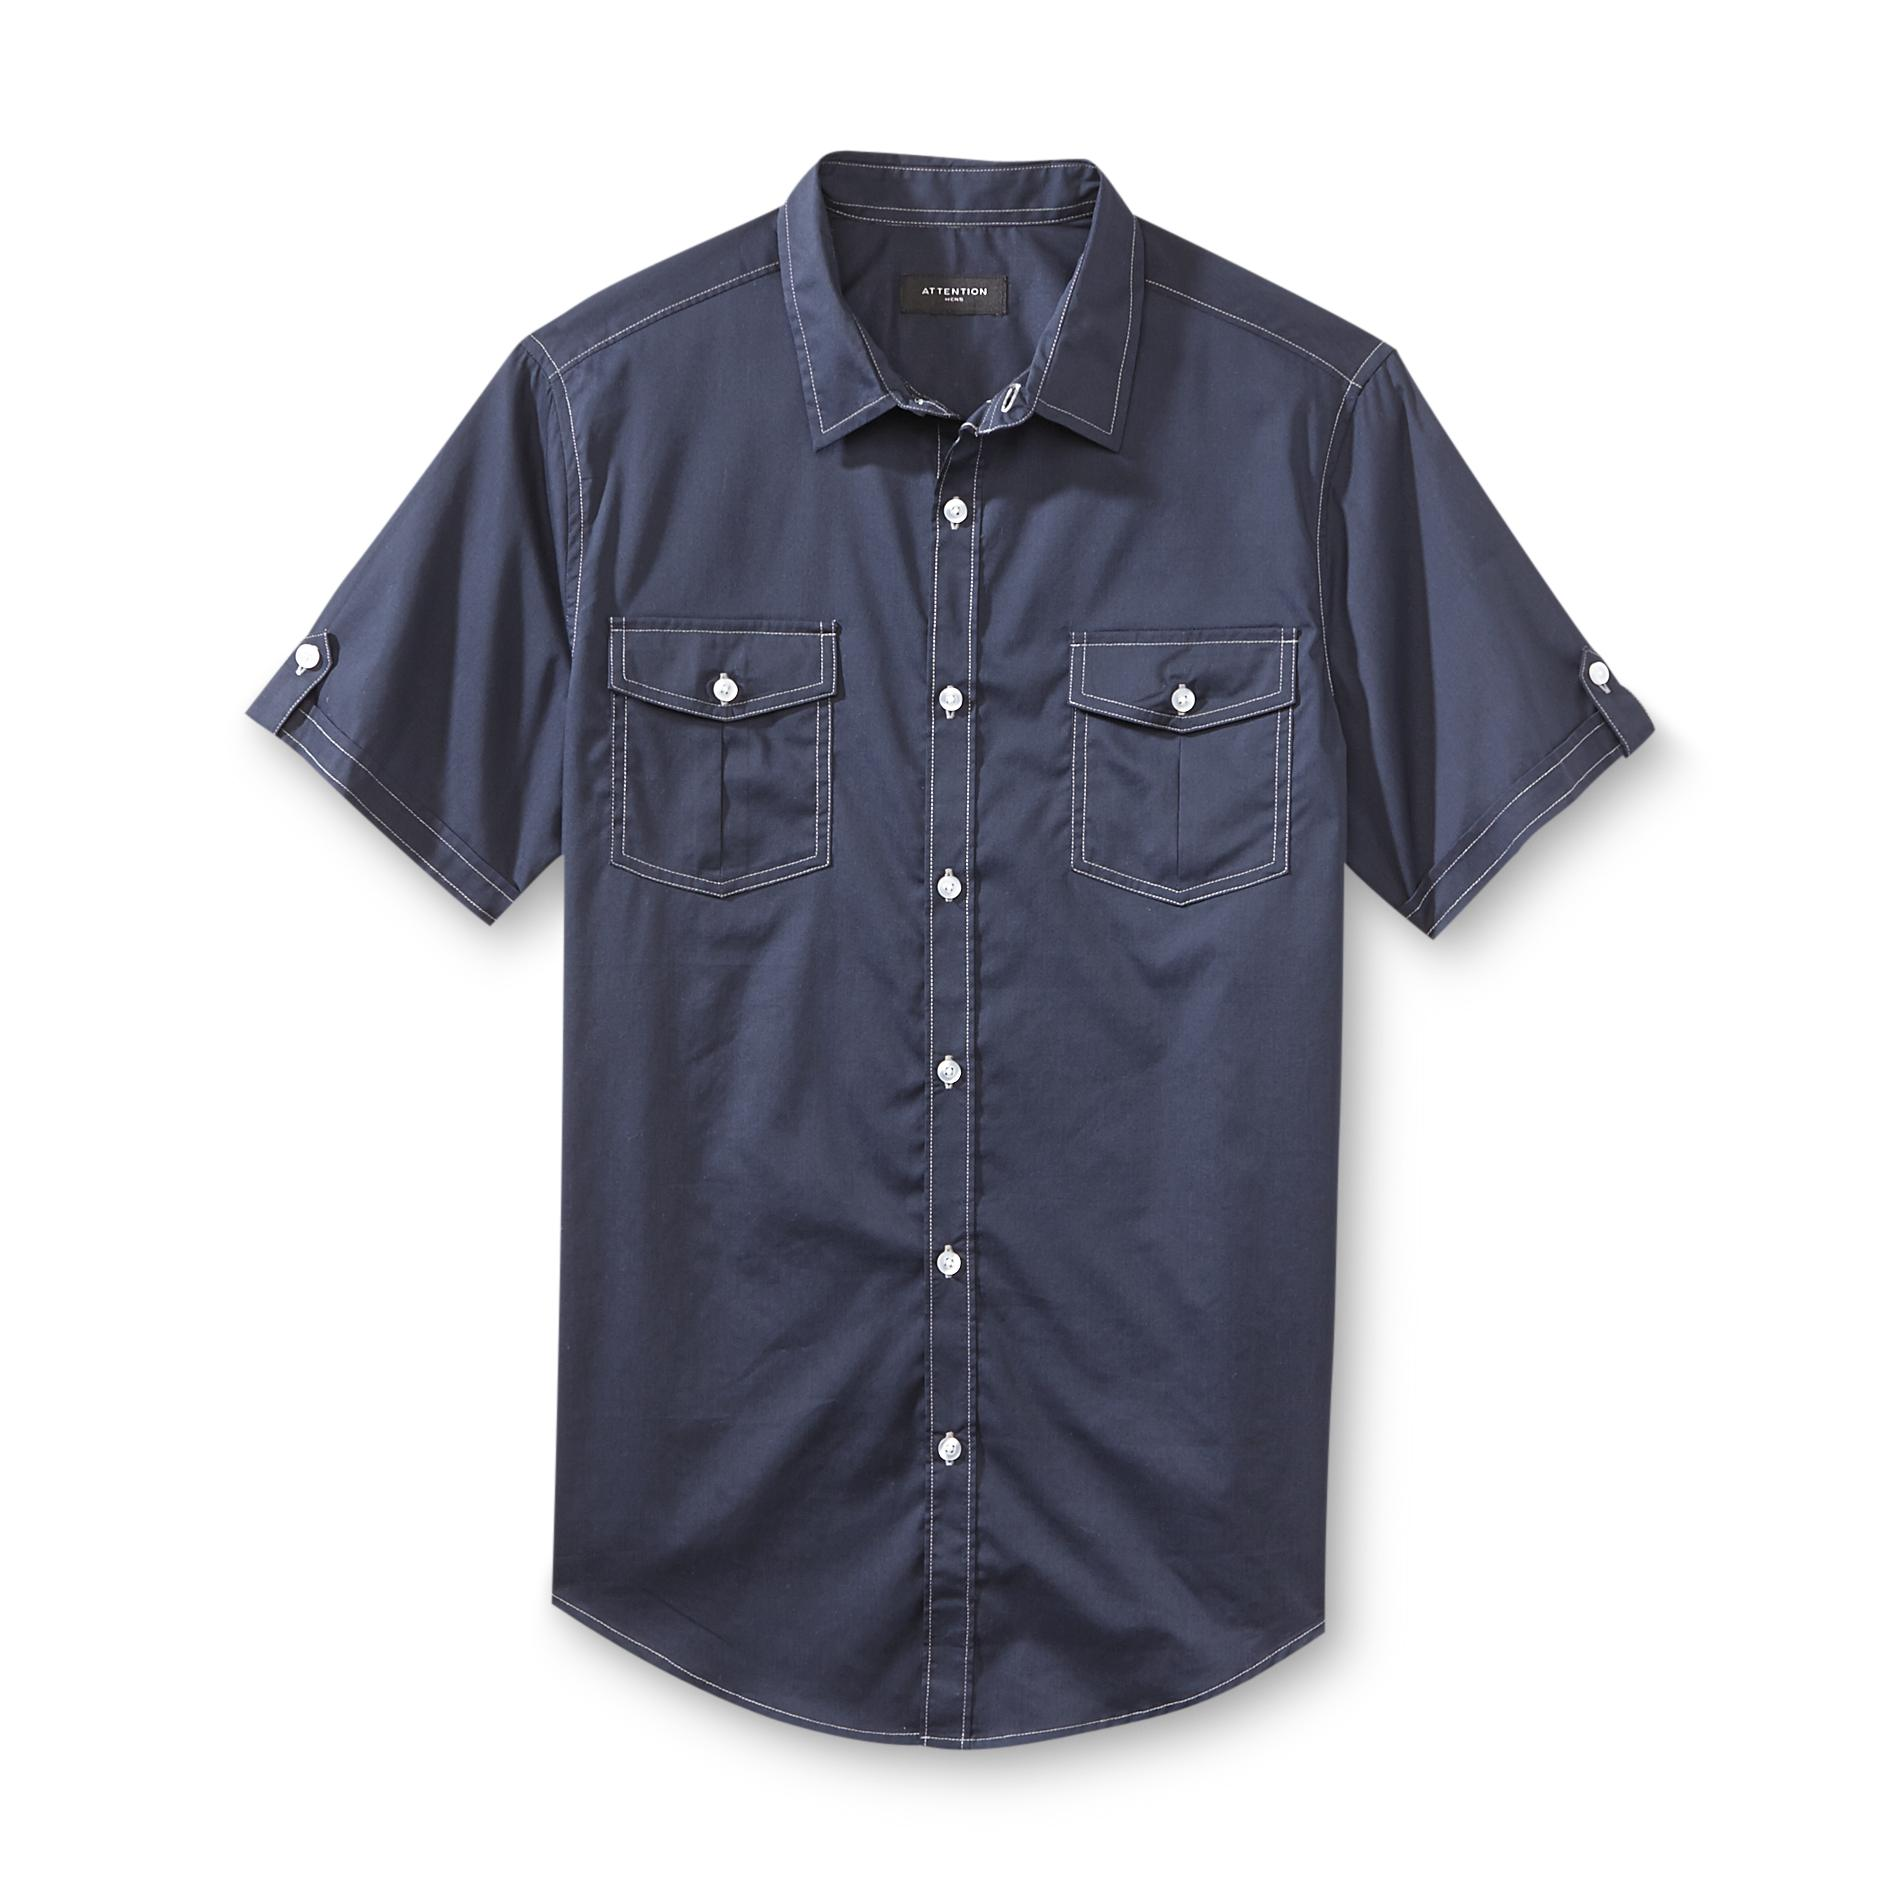 Attention Men's Short-Sleeve Casual Shirt at Kmart.com